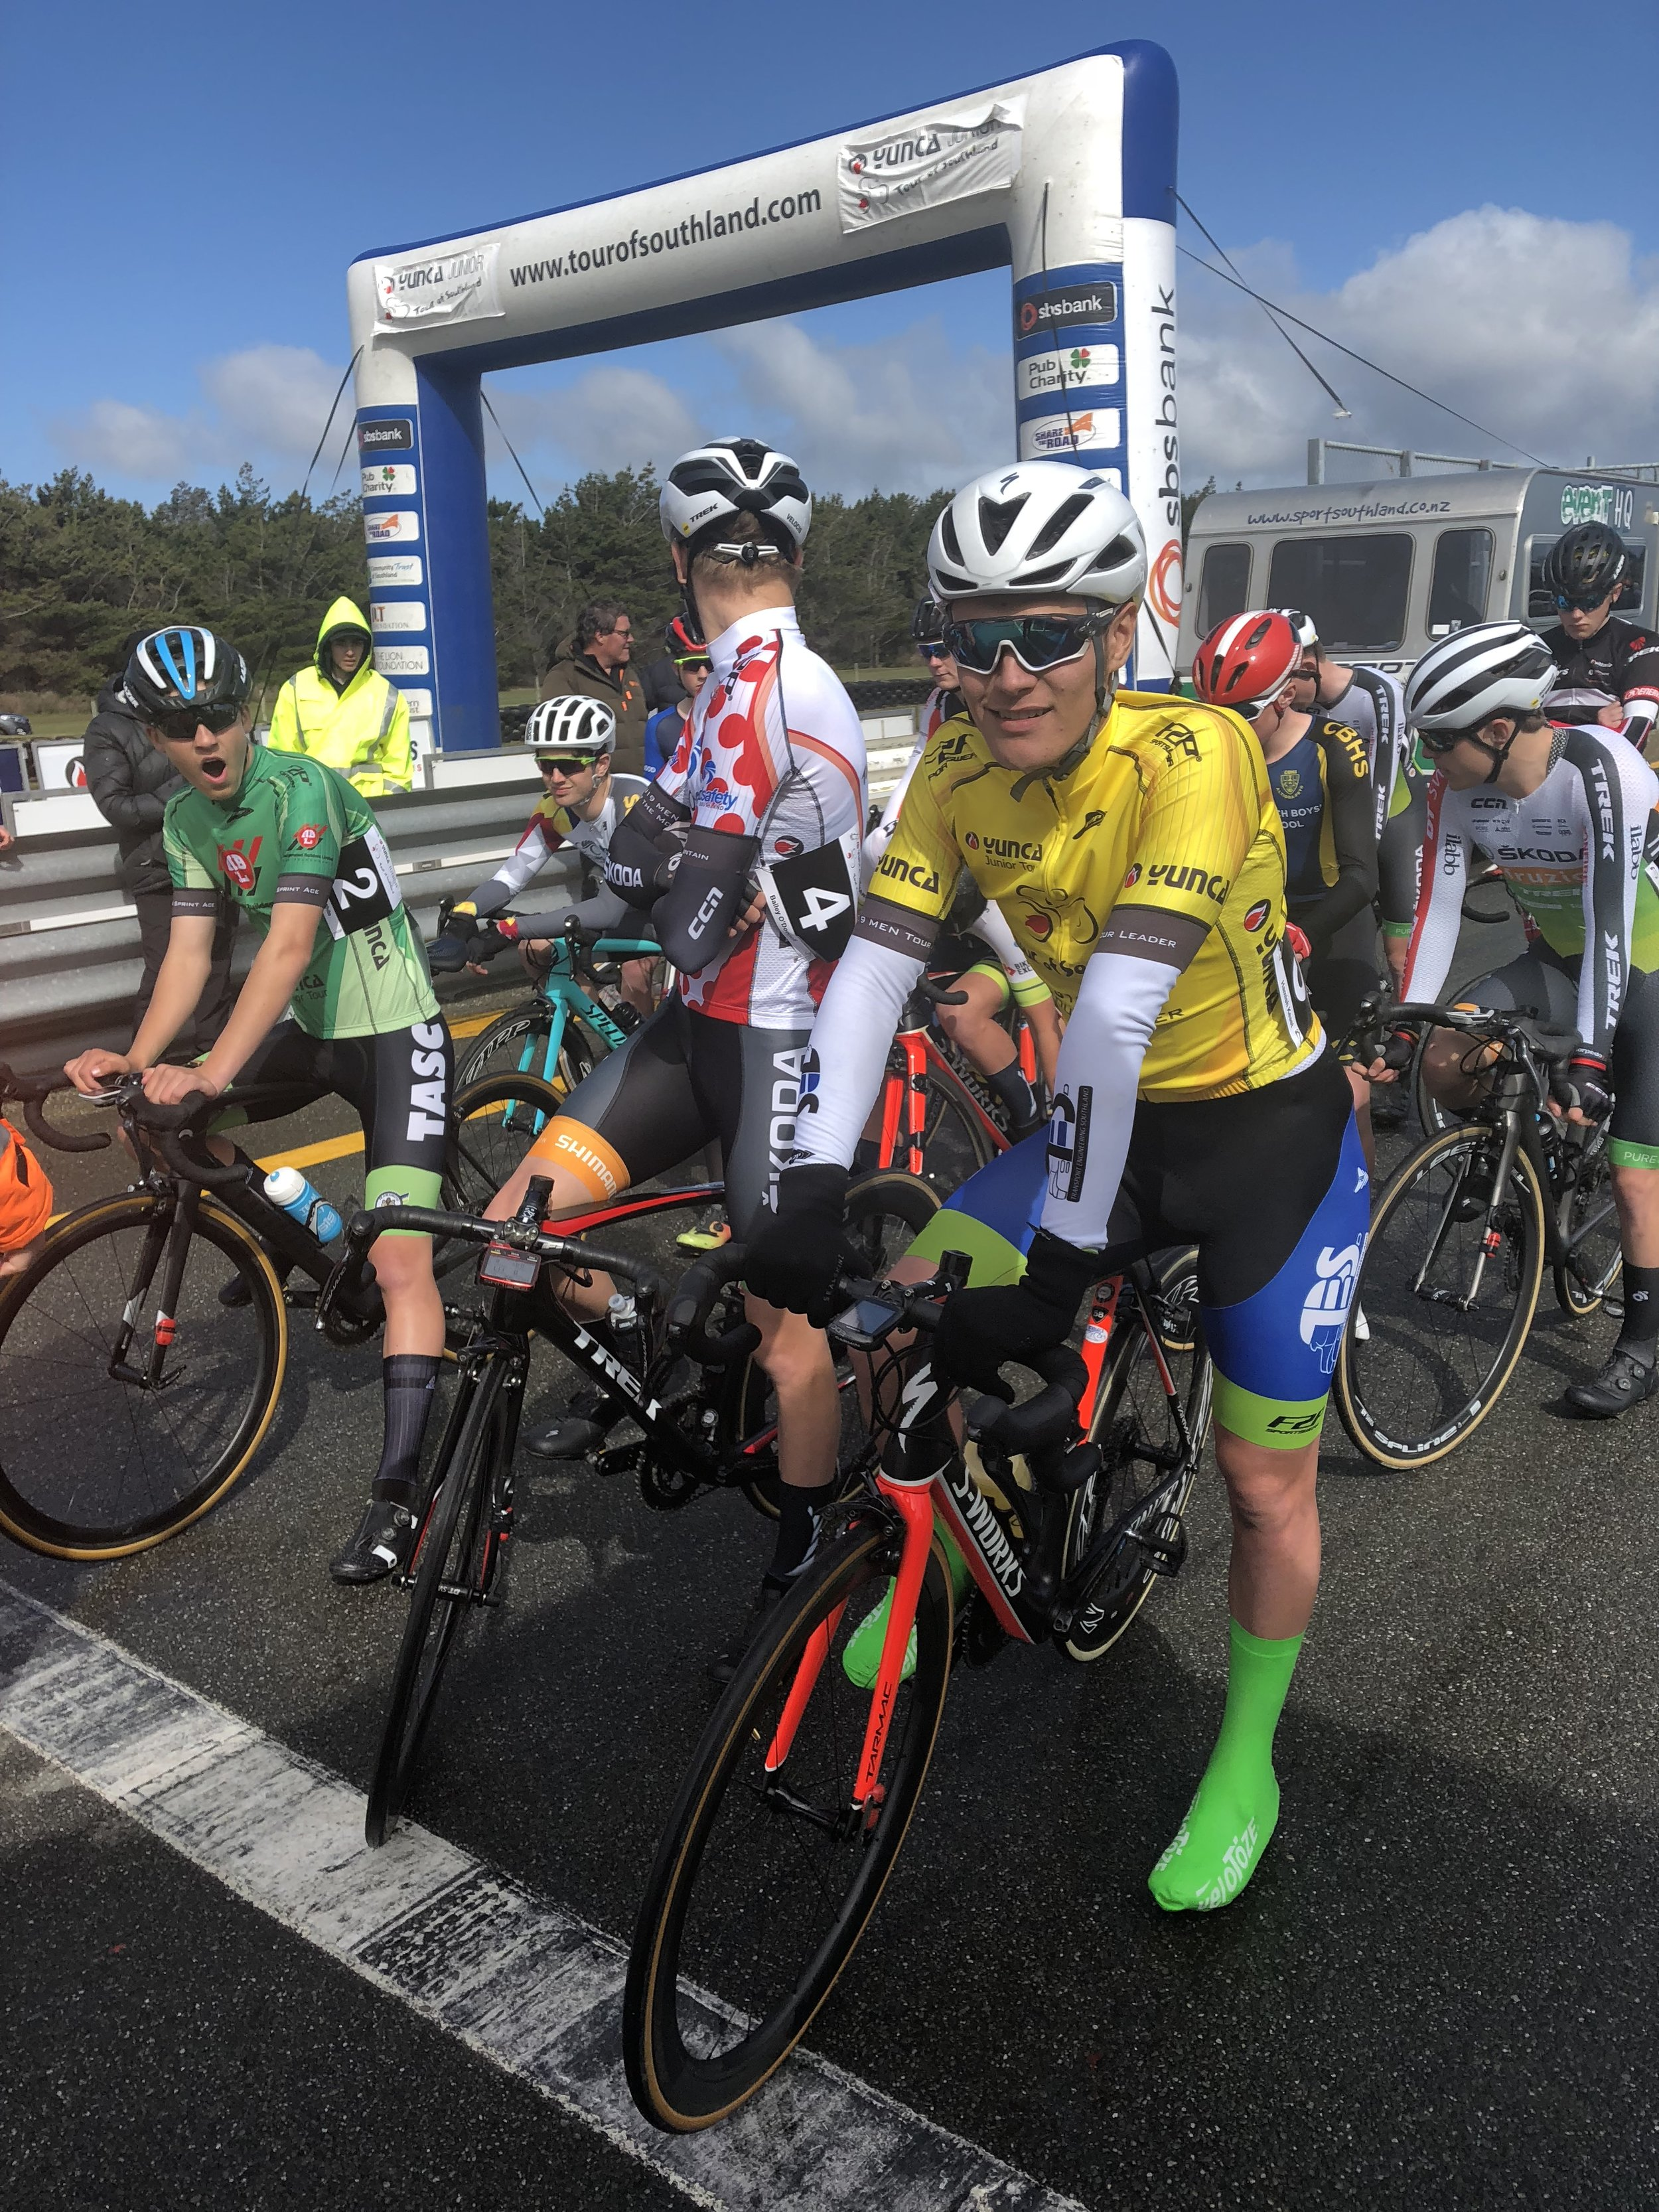 Photo: On the start line at last year's Yunca Junior Tour of Southland. Pic: Cycling Southland